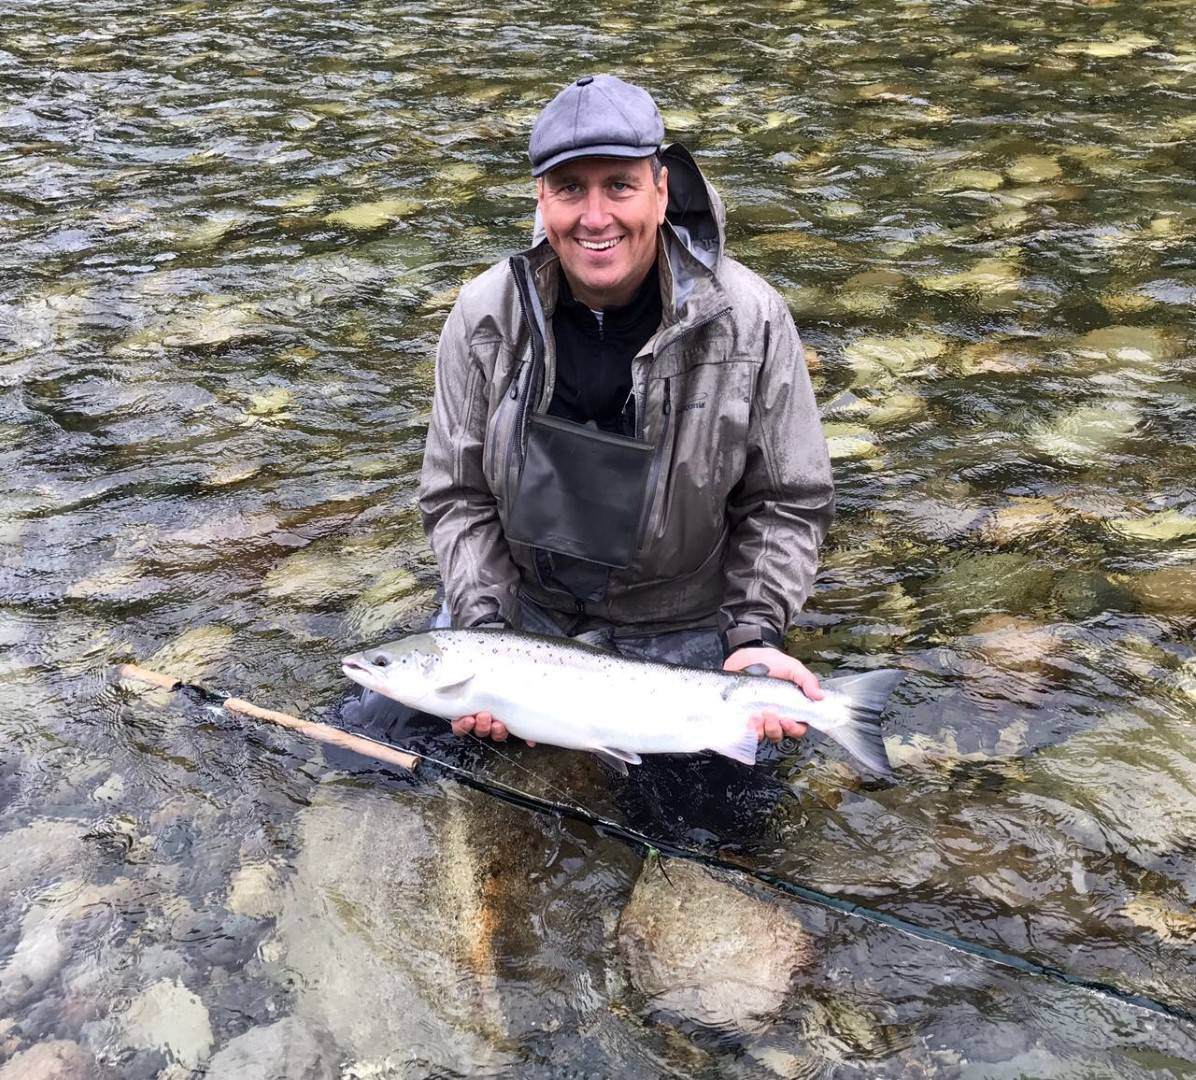 Matthias Vorweg with one of his salmon that day.